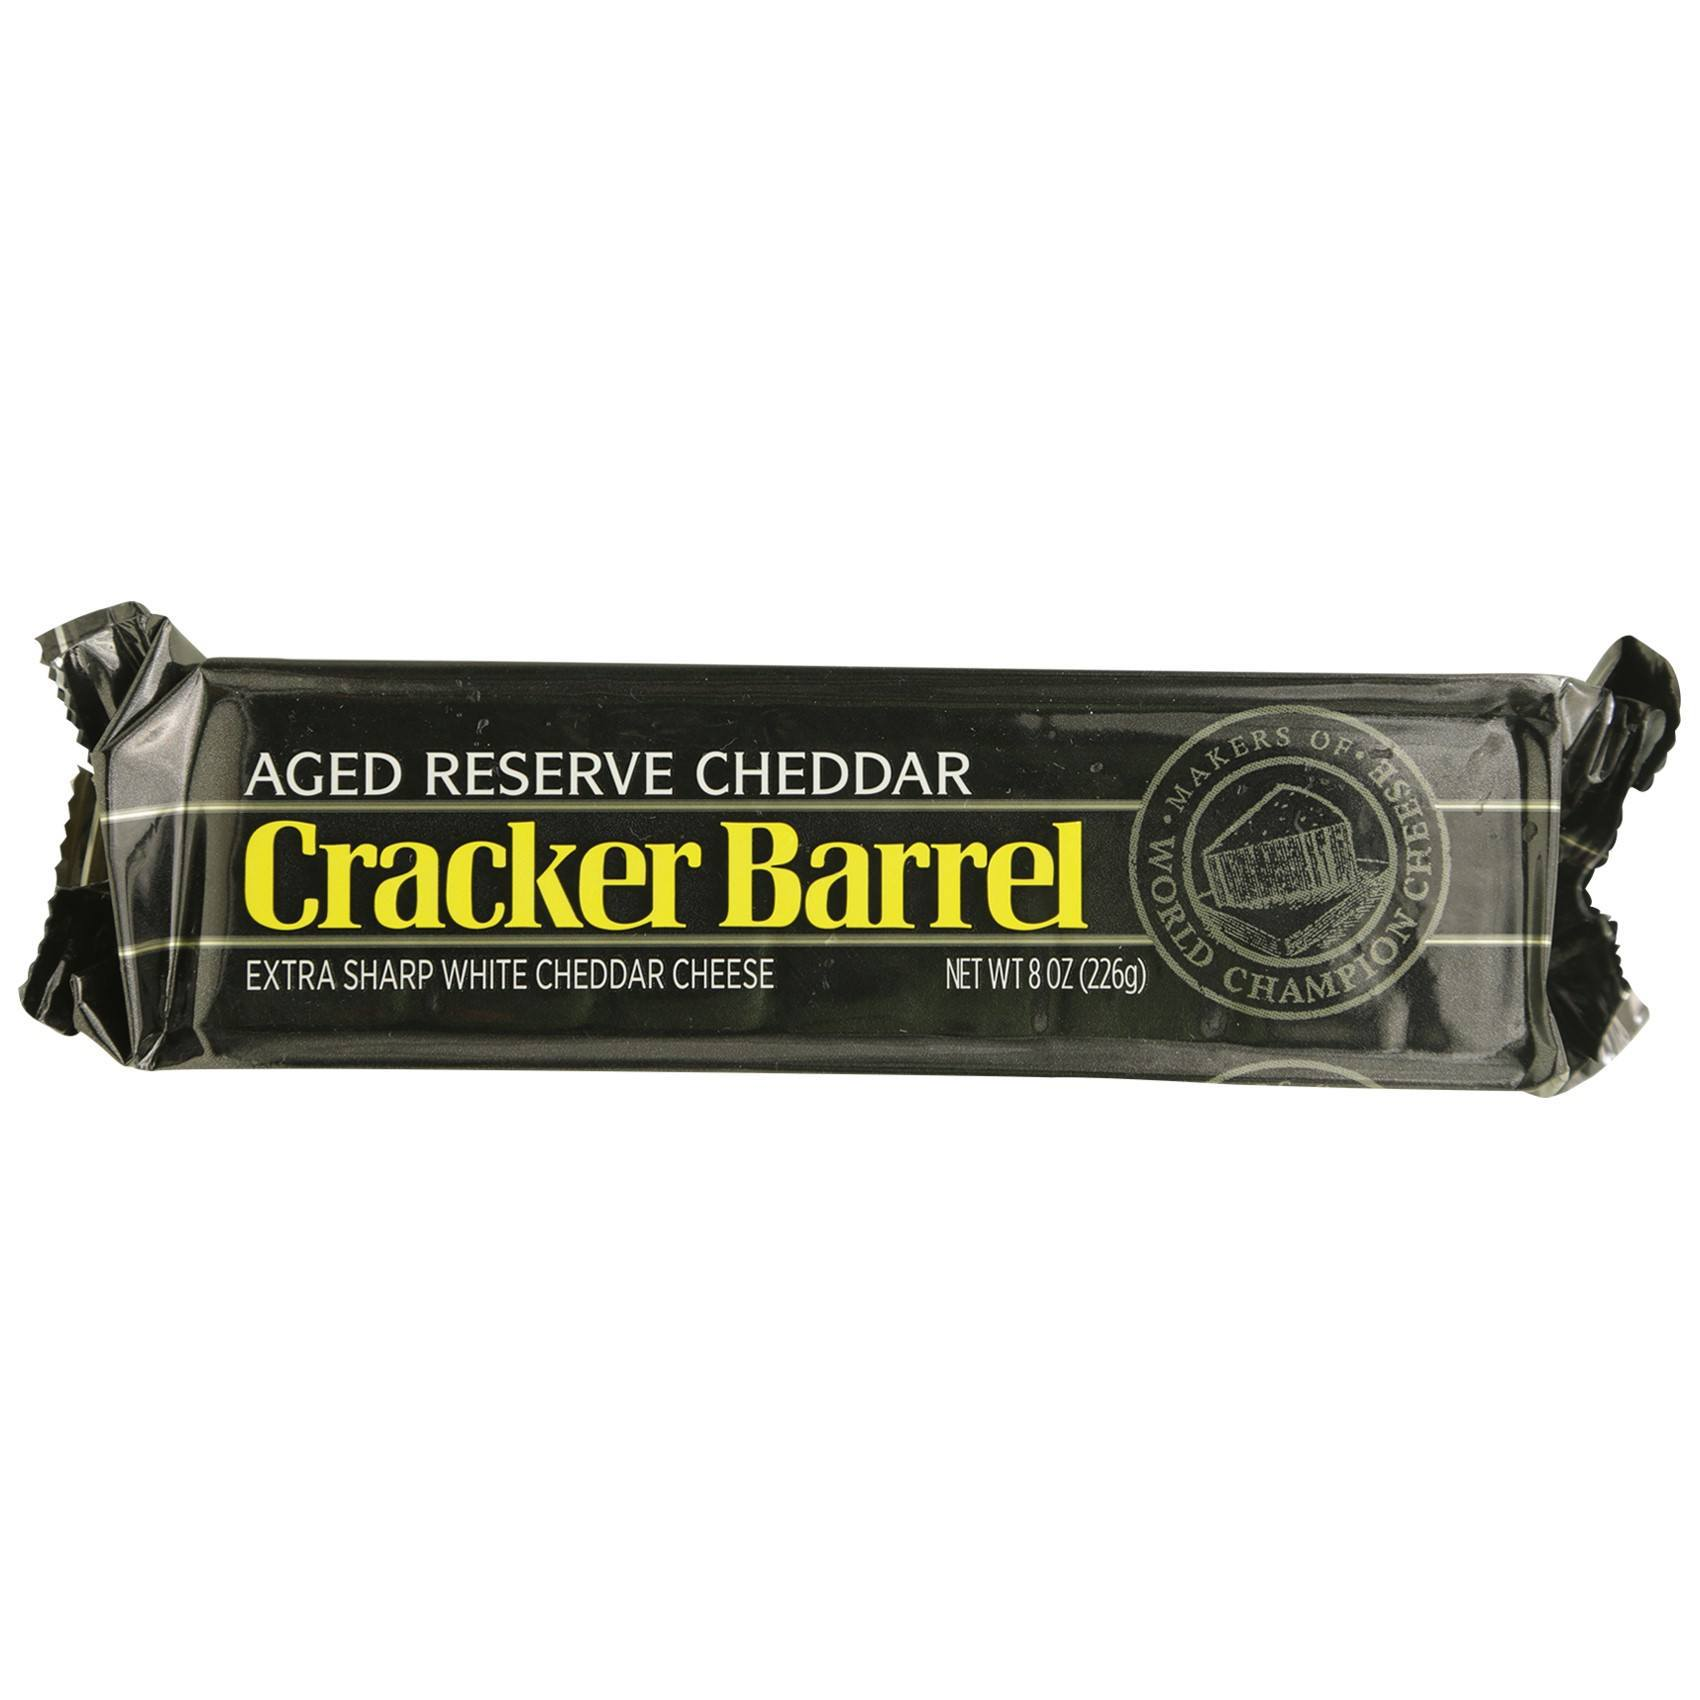 KRAFT CRACKER BARREL ARESERVE 283G